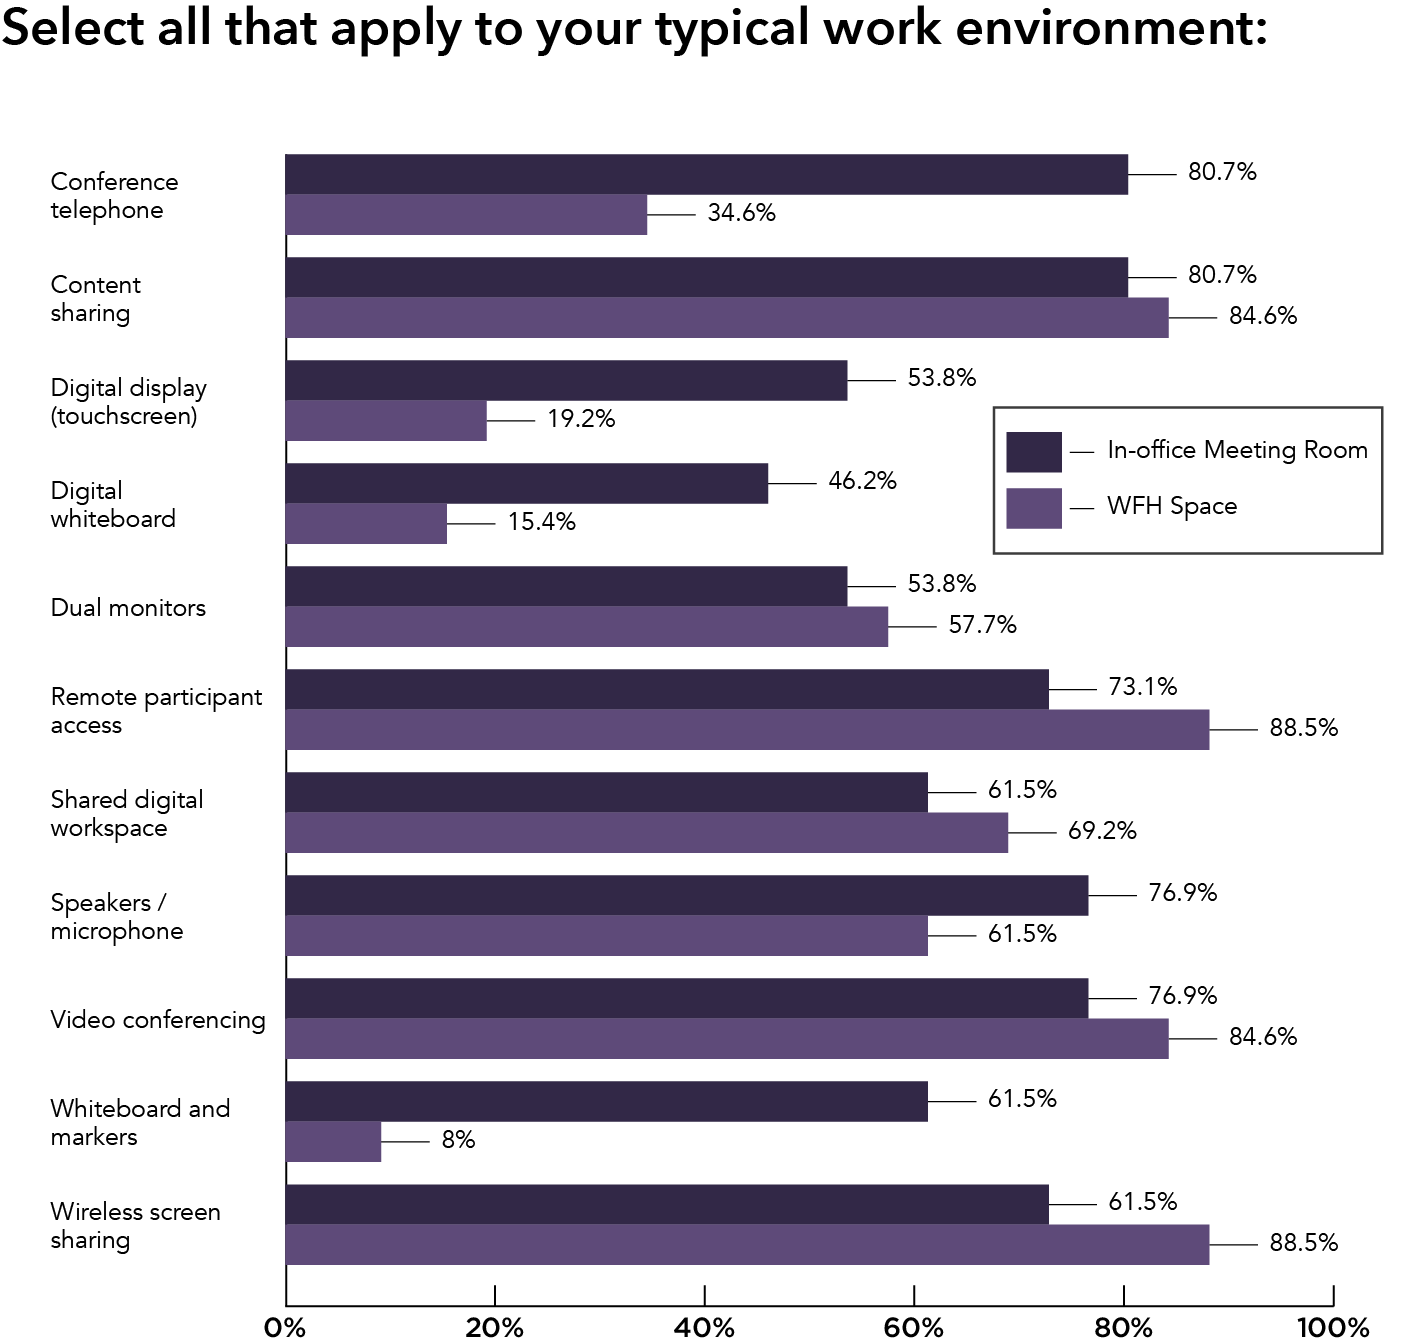 select-all-that-apply-to-your-typical-work-environment-graph5